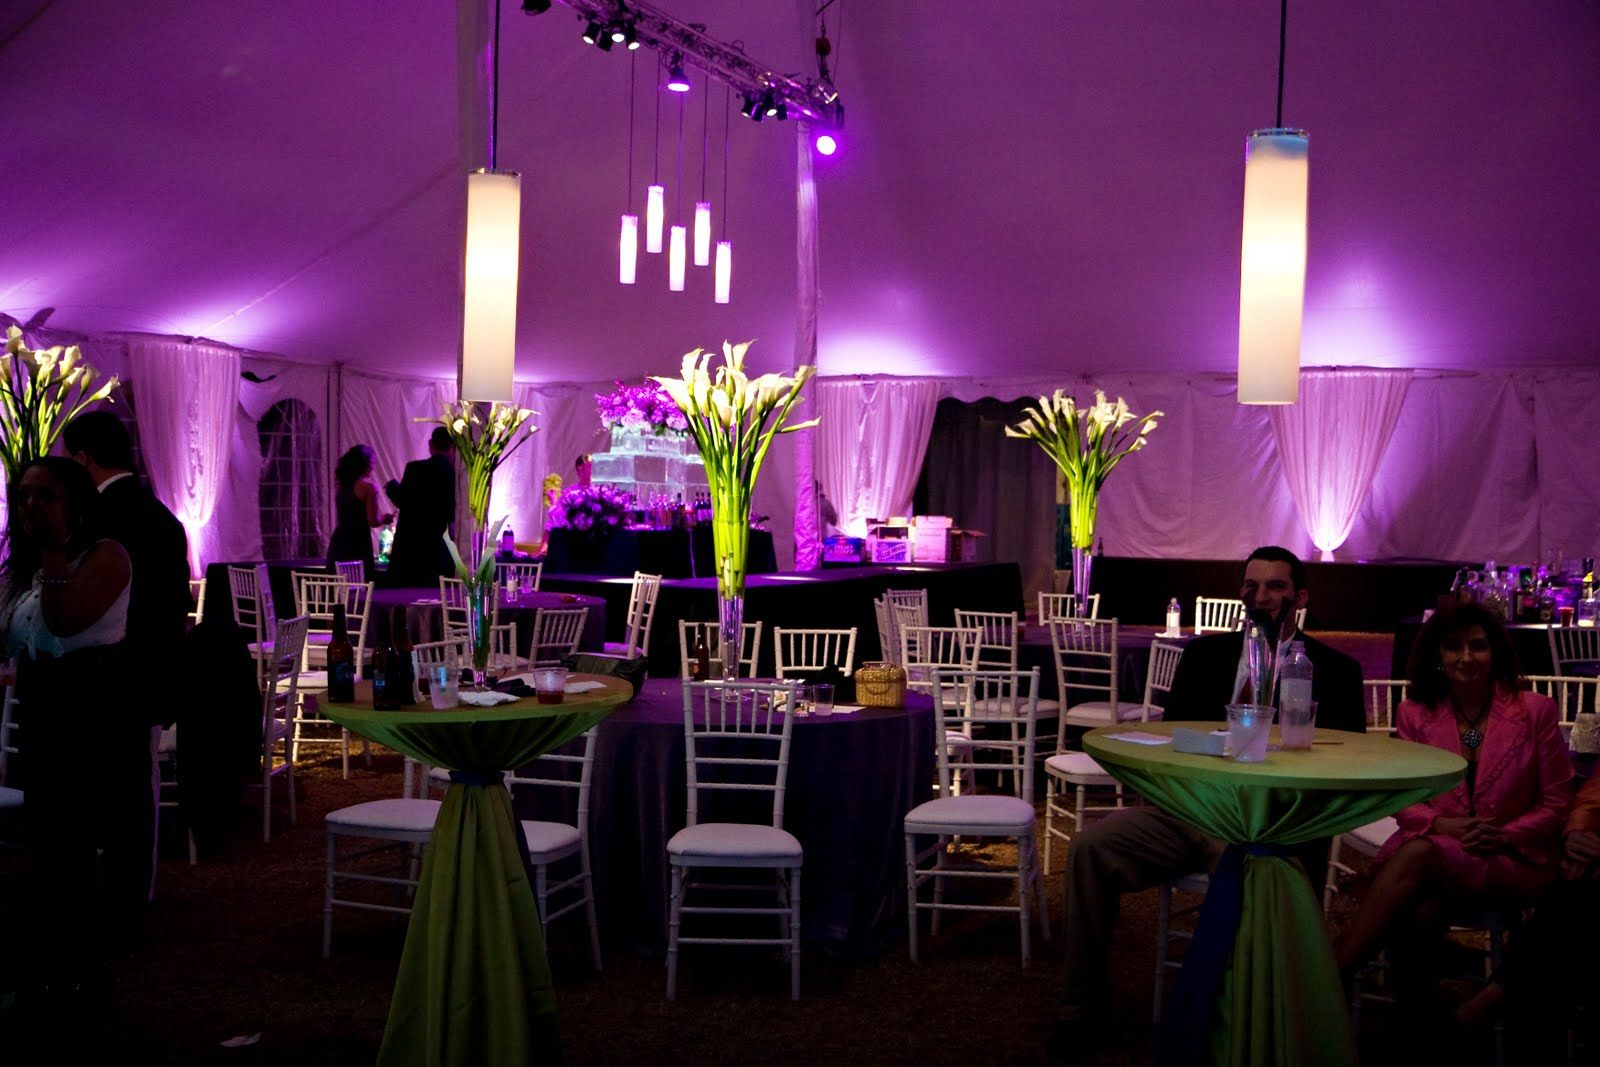 Wedding tent decoration images  Welcome to the Sweetest Blog Tent Wedding Inspirations  Tying The